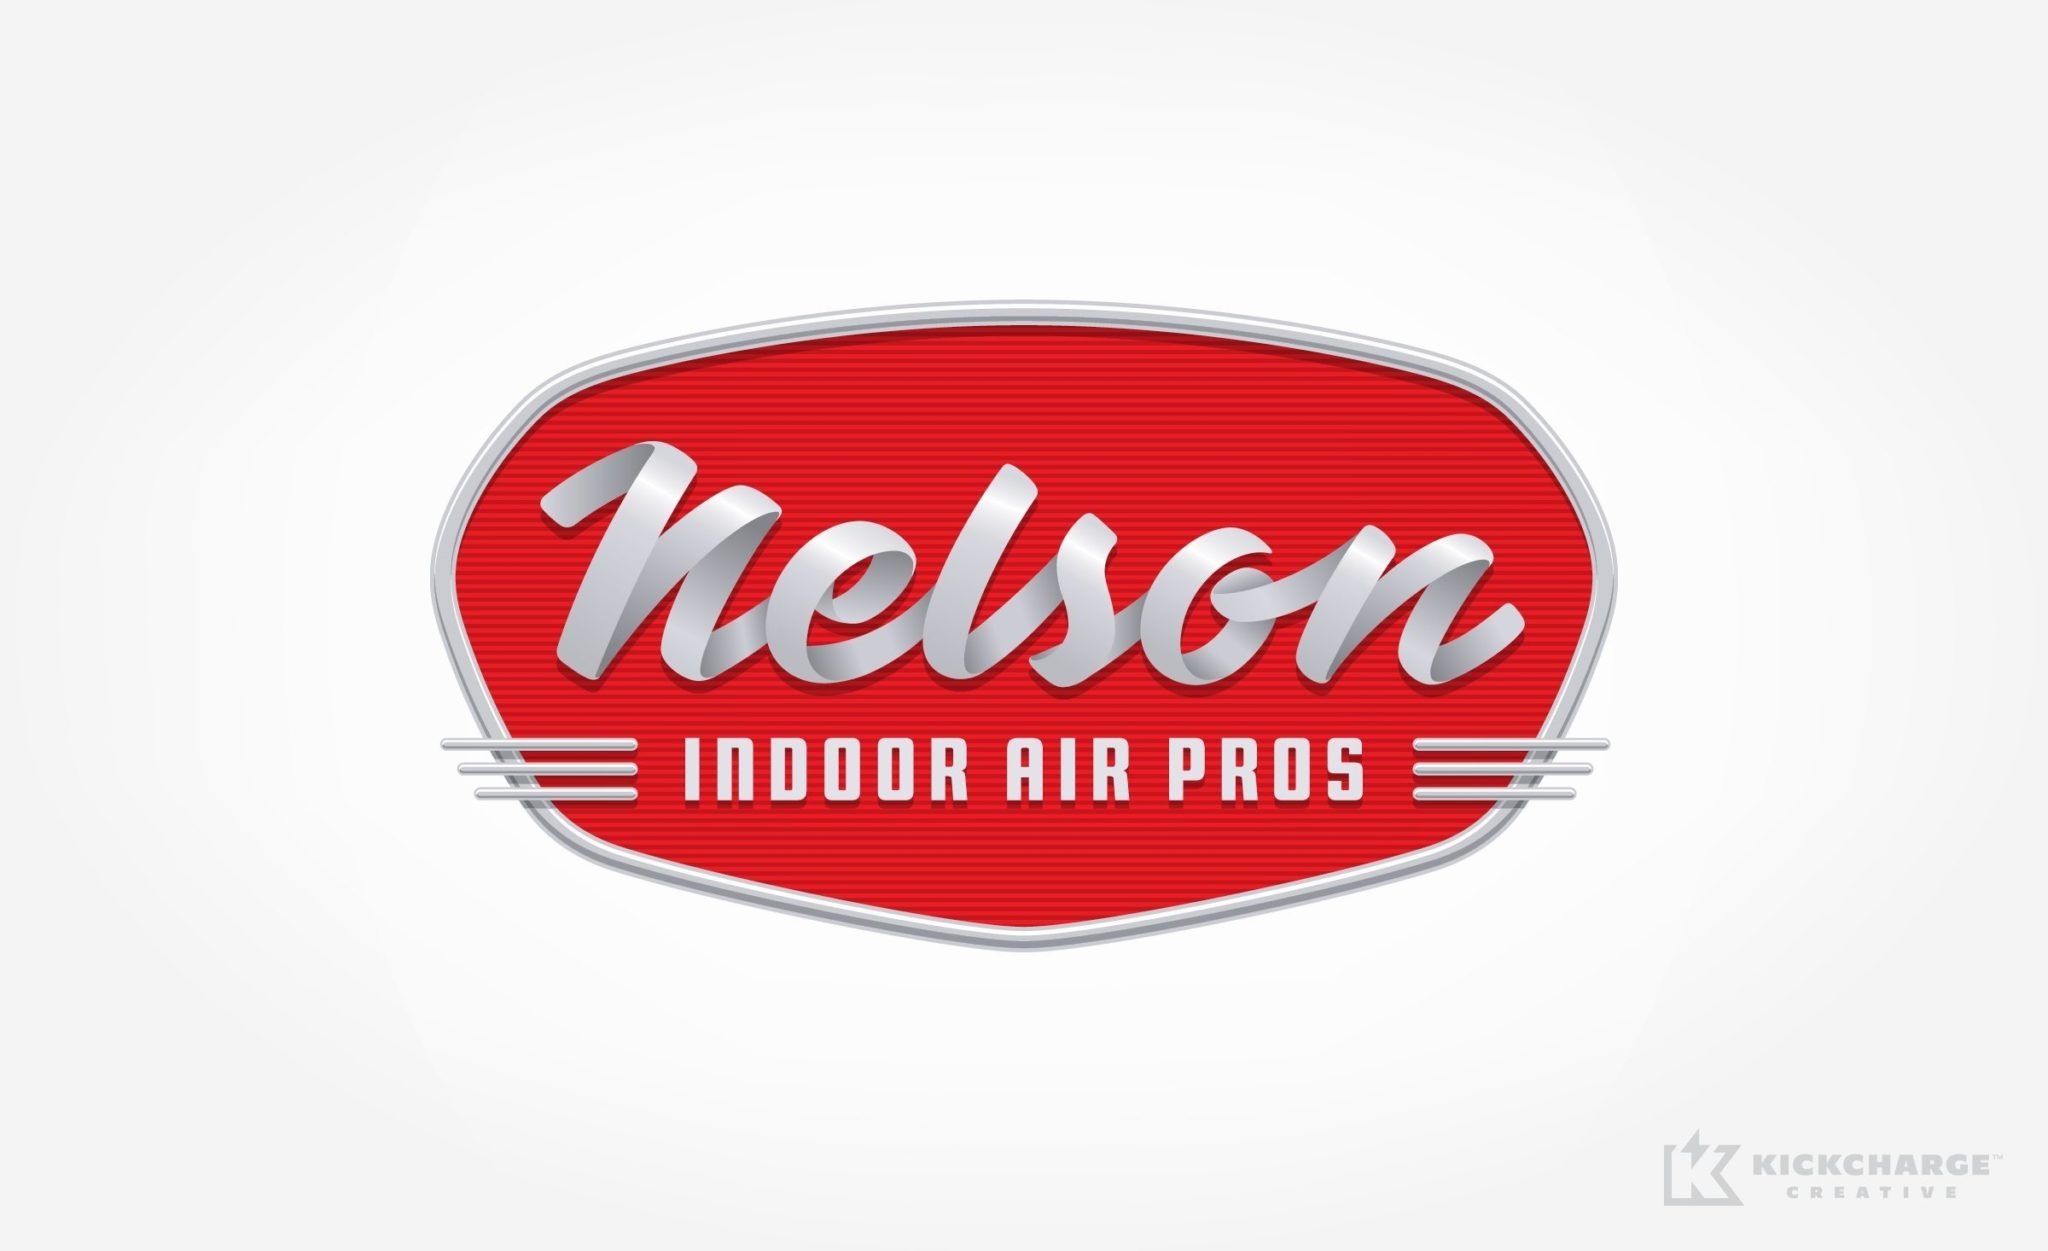 Nelson Indoor Air Pros